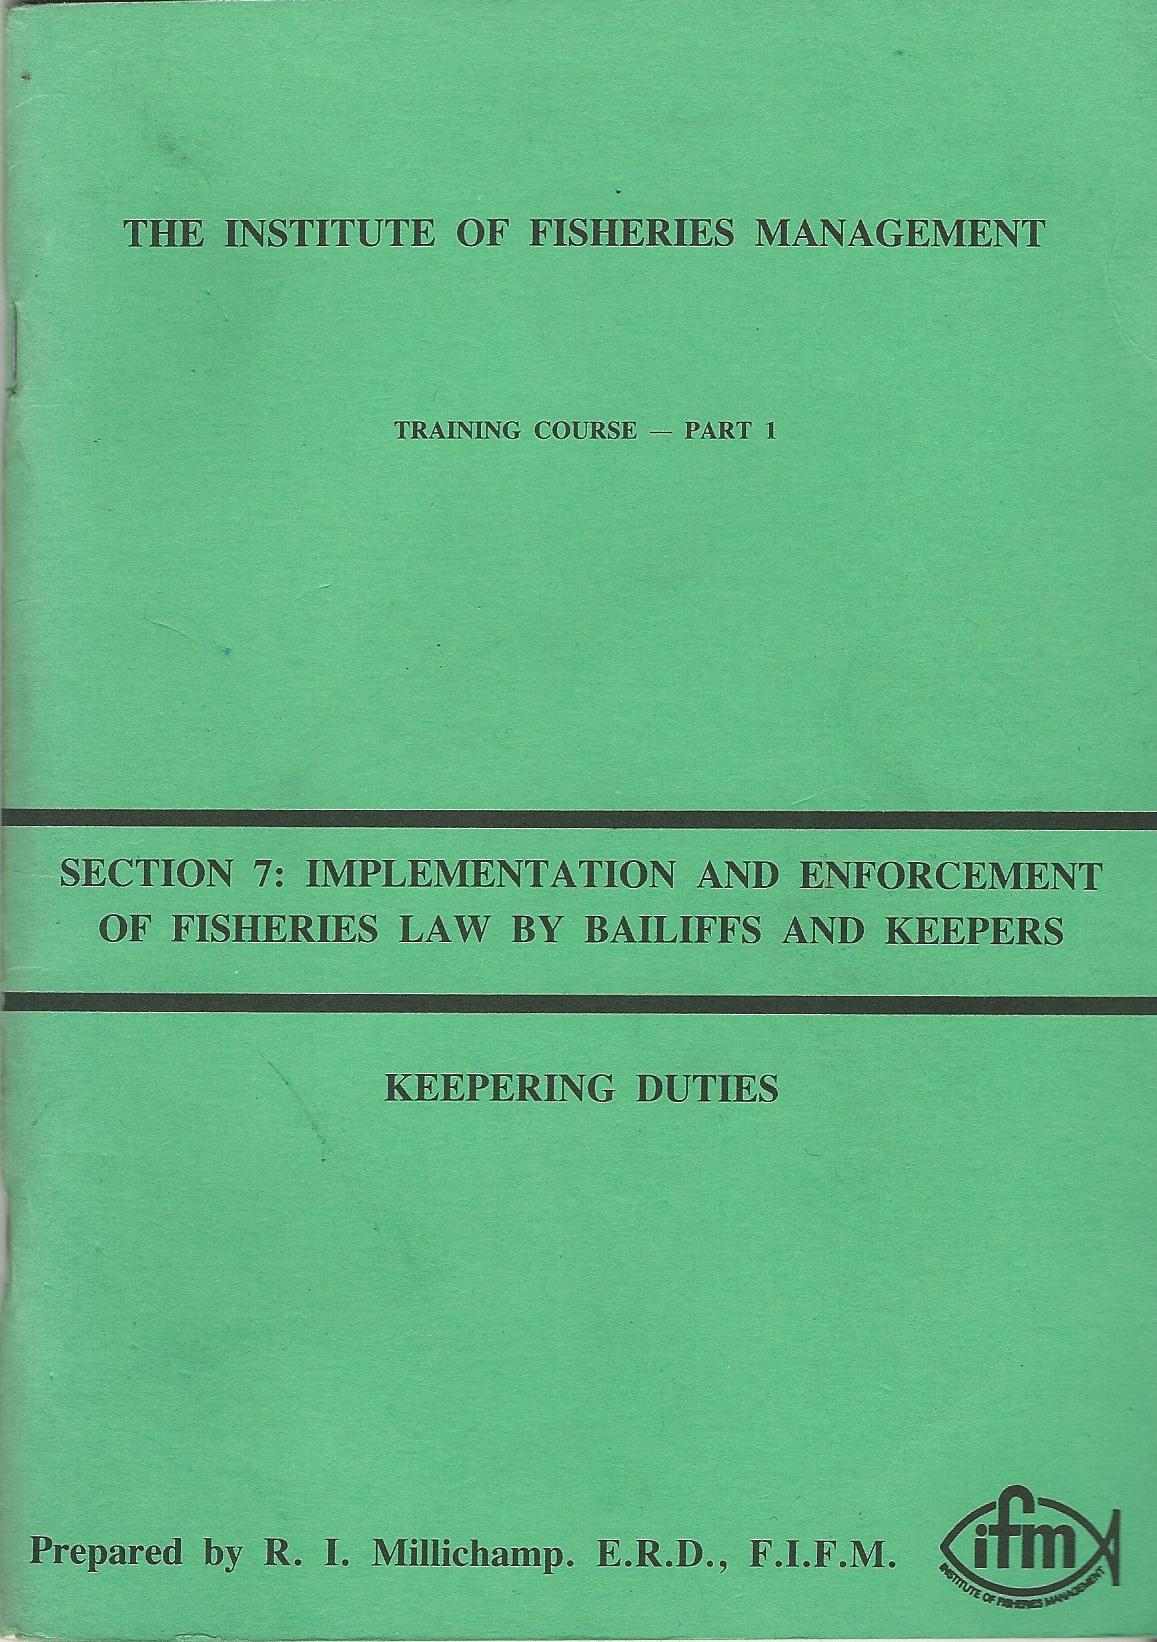 Image for The Institute of Fisheries Management - Training Course - Part 1, Section 7: Implementation and Enforcement of Fisheries Law by Bailiffs and Keepers